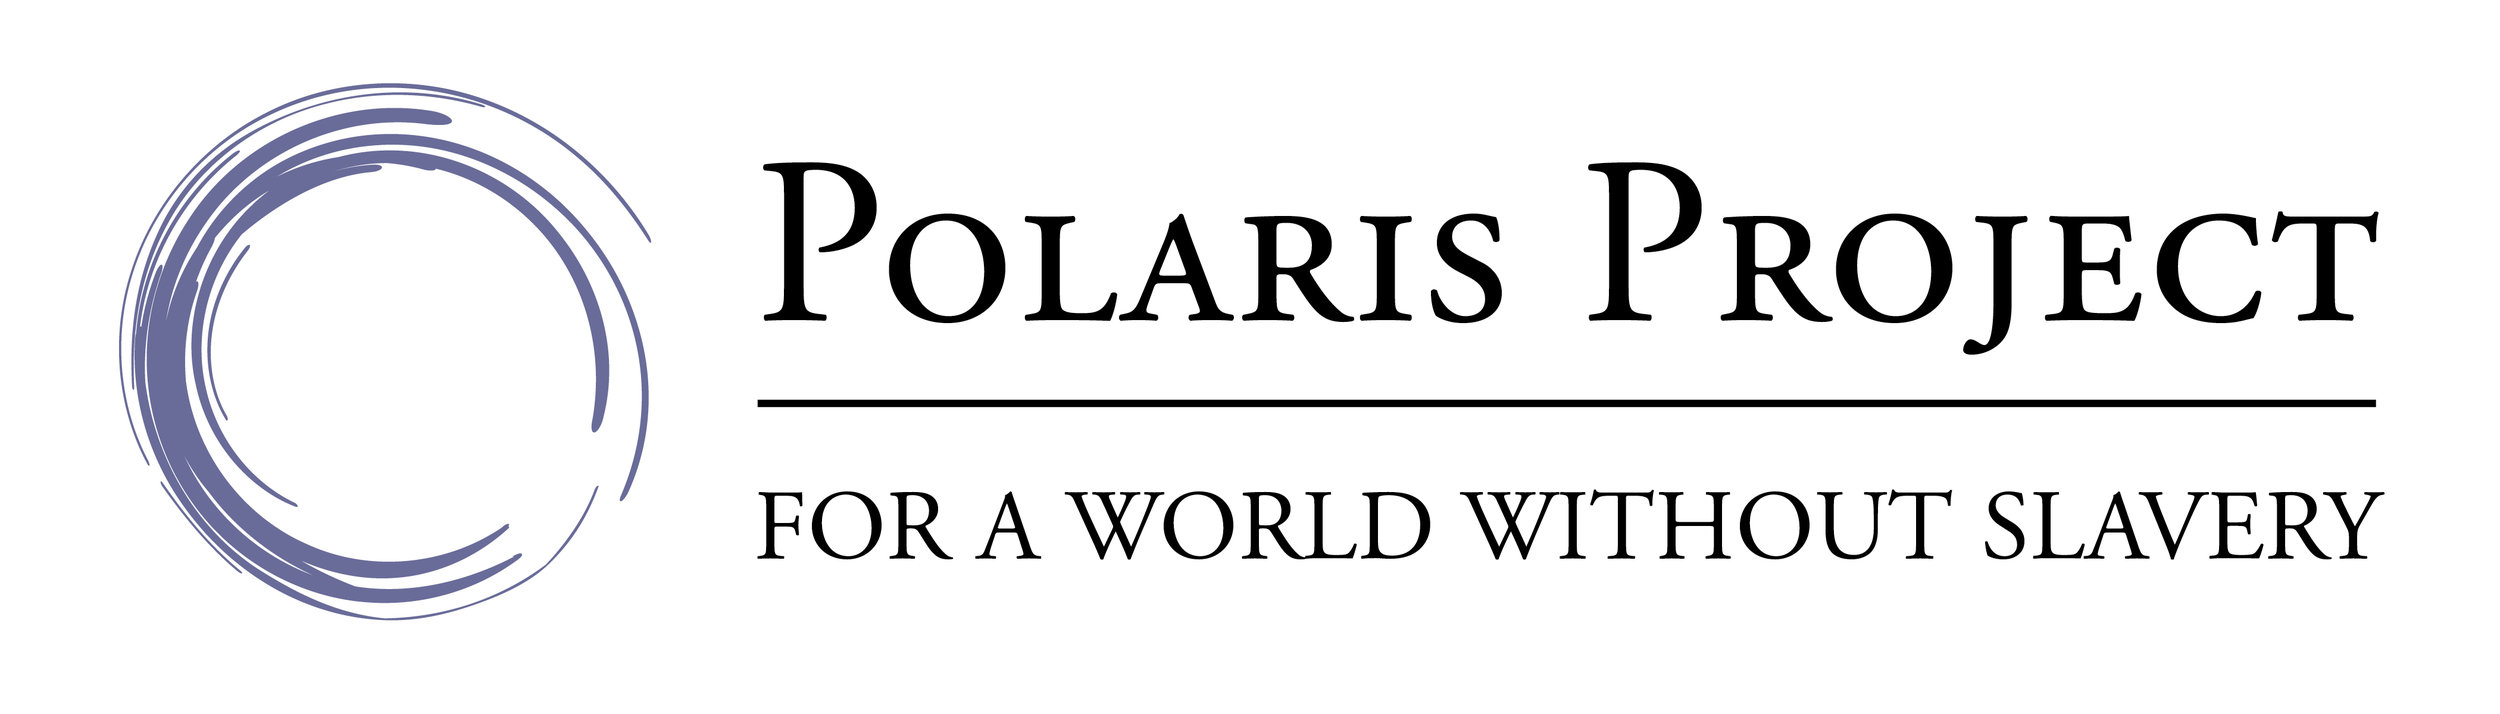 Polaris Project